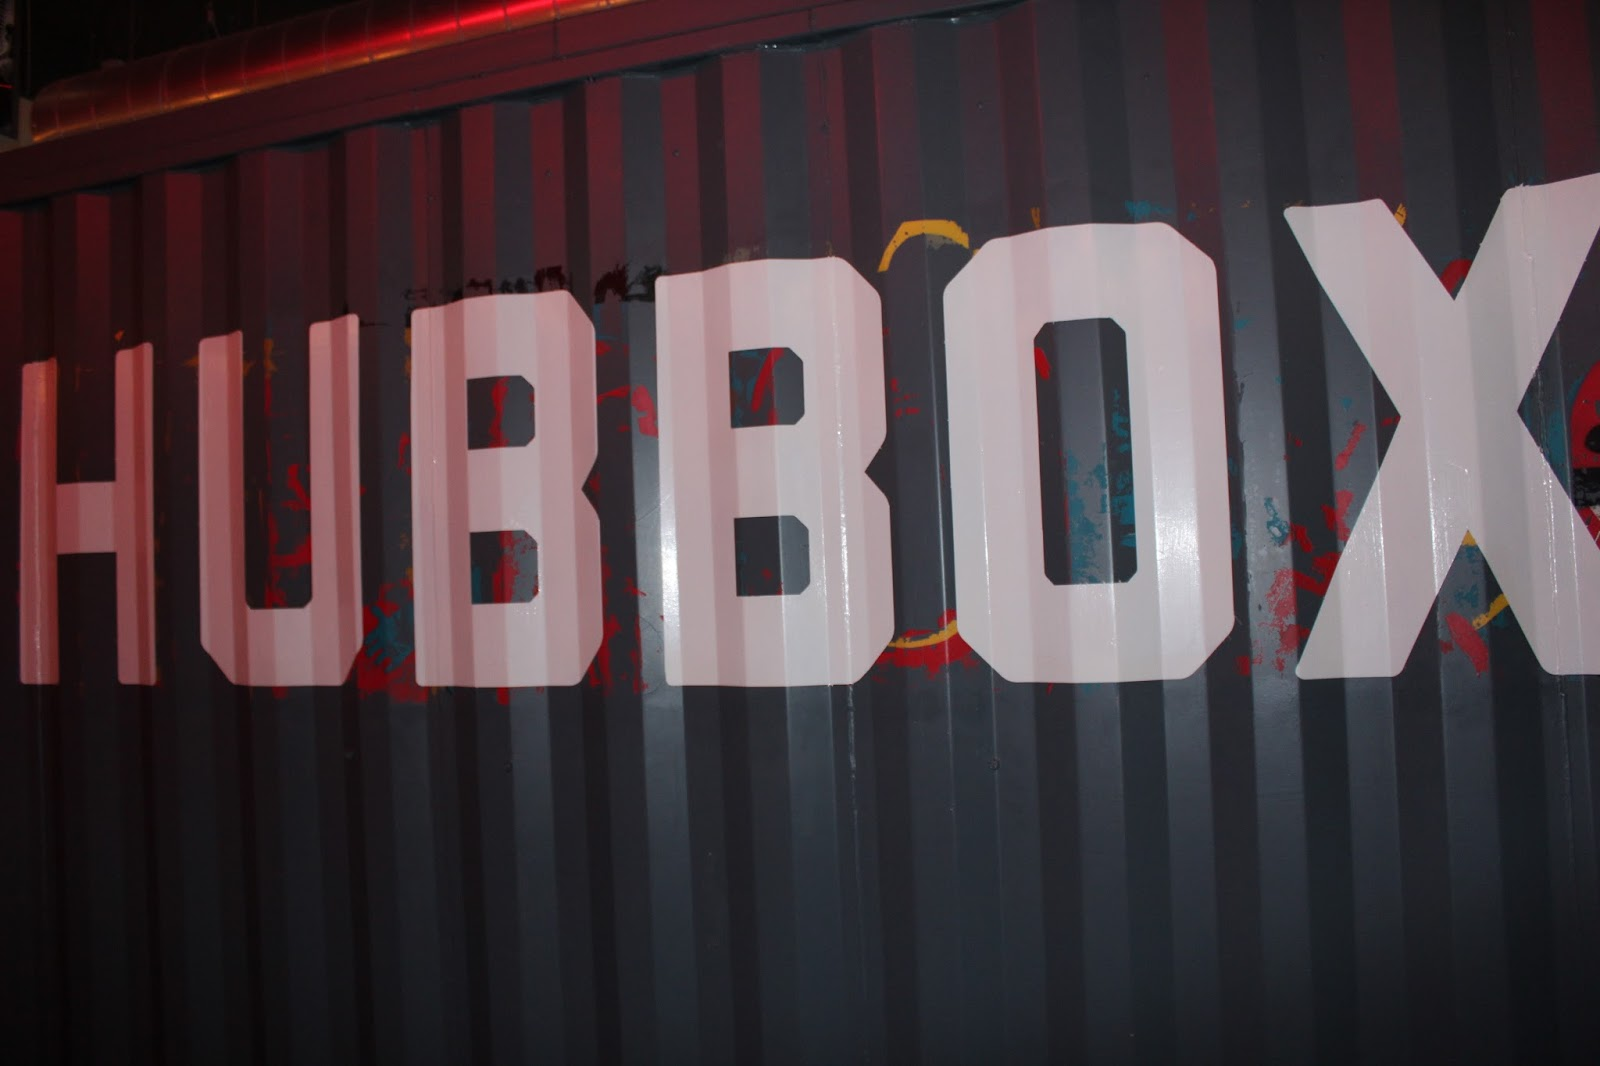 Hubbox Plymouth